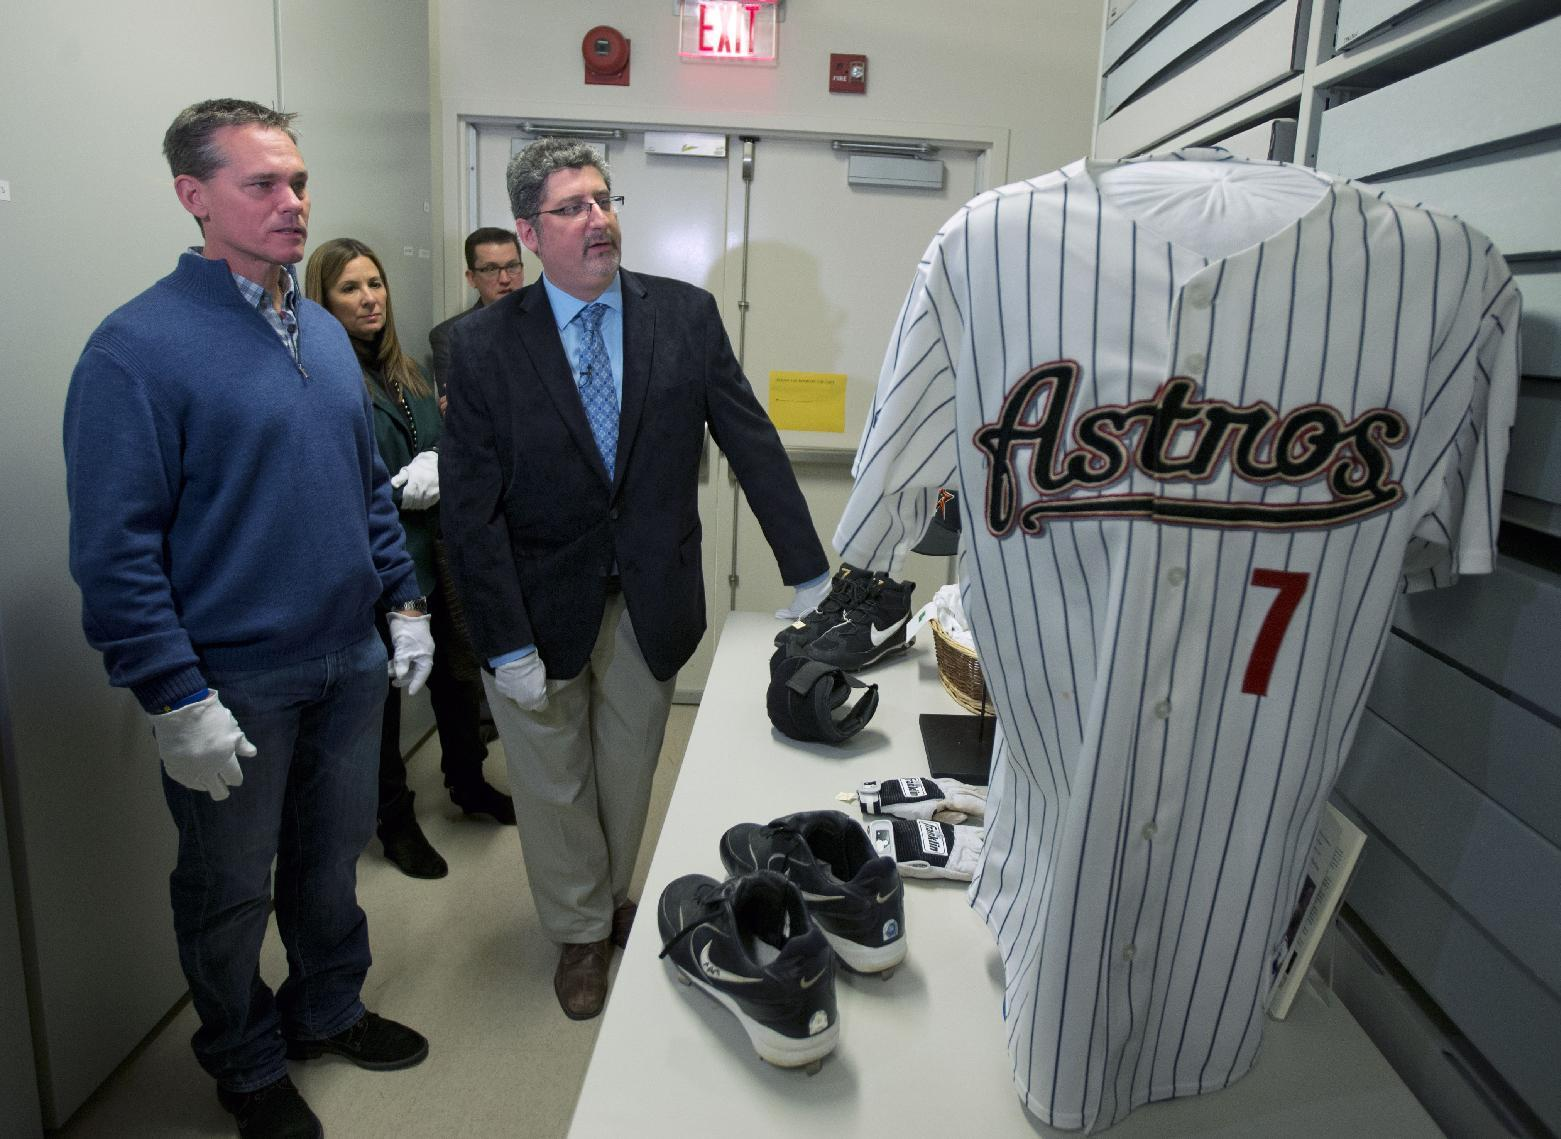 Craig Biggio 'kind of speechless' after Hall of Fame visit